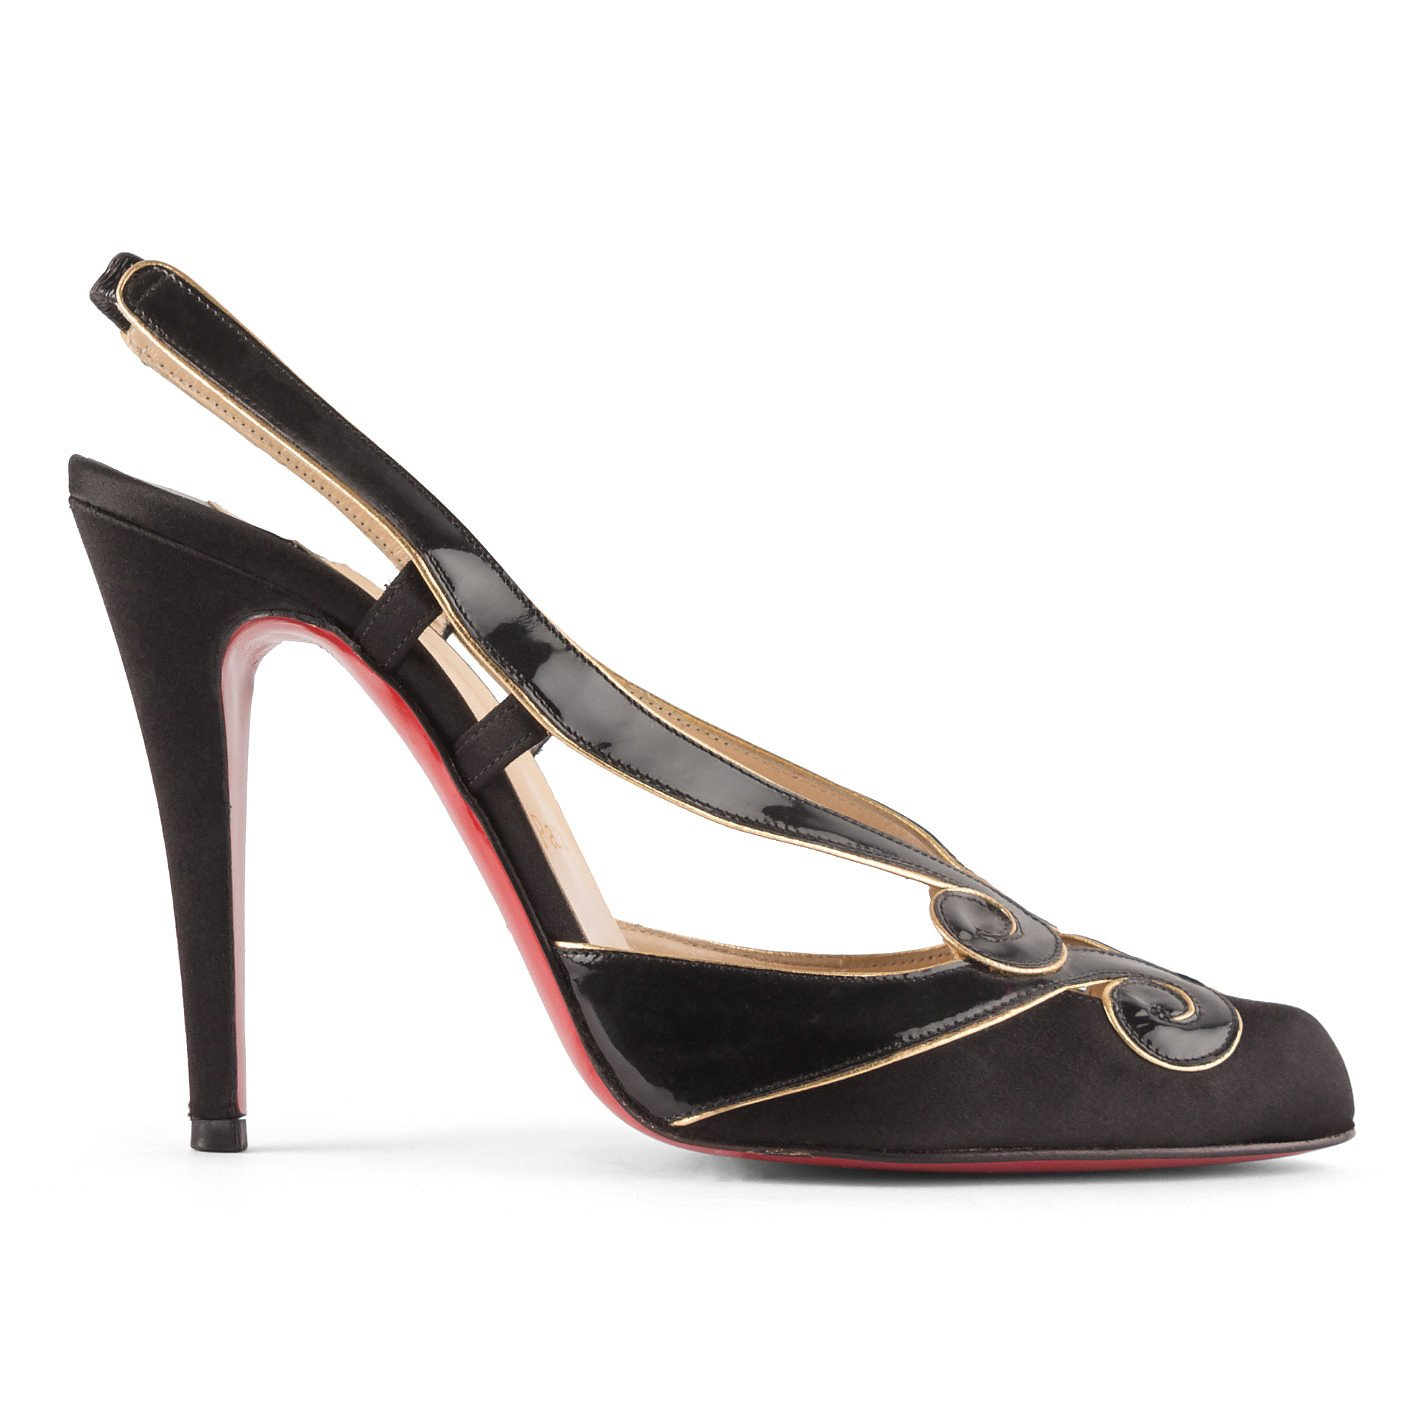 Christian Louboutin Satin and Patent Leather Pumps